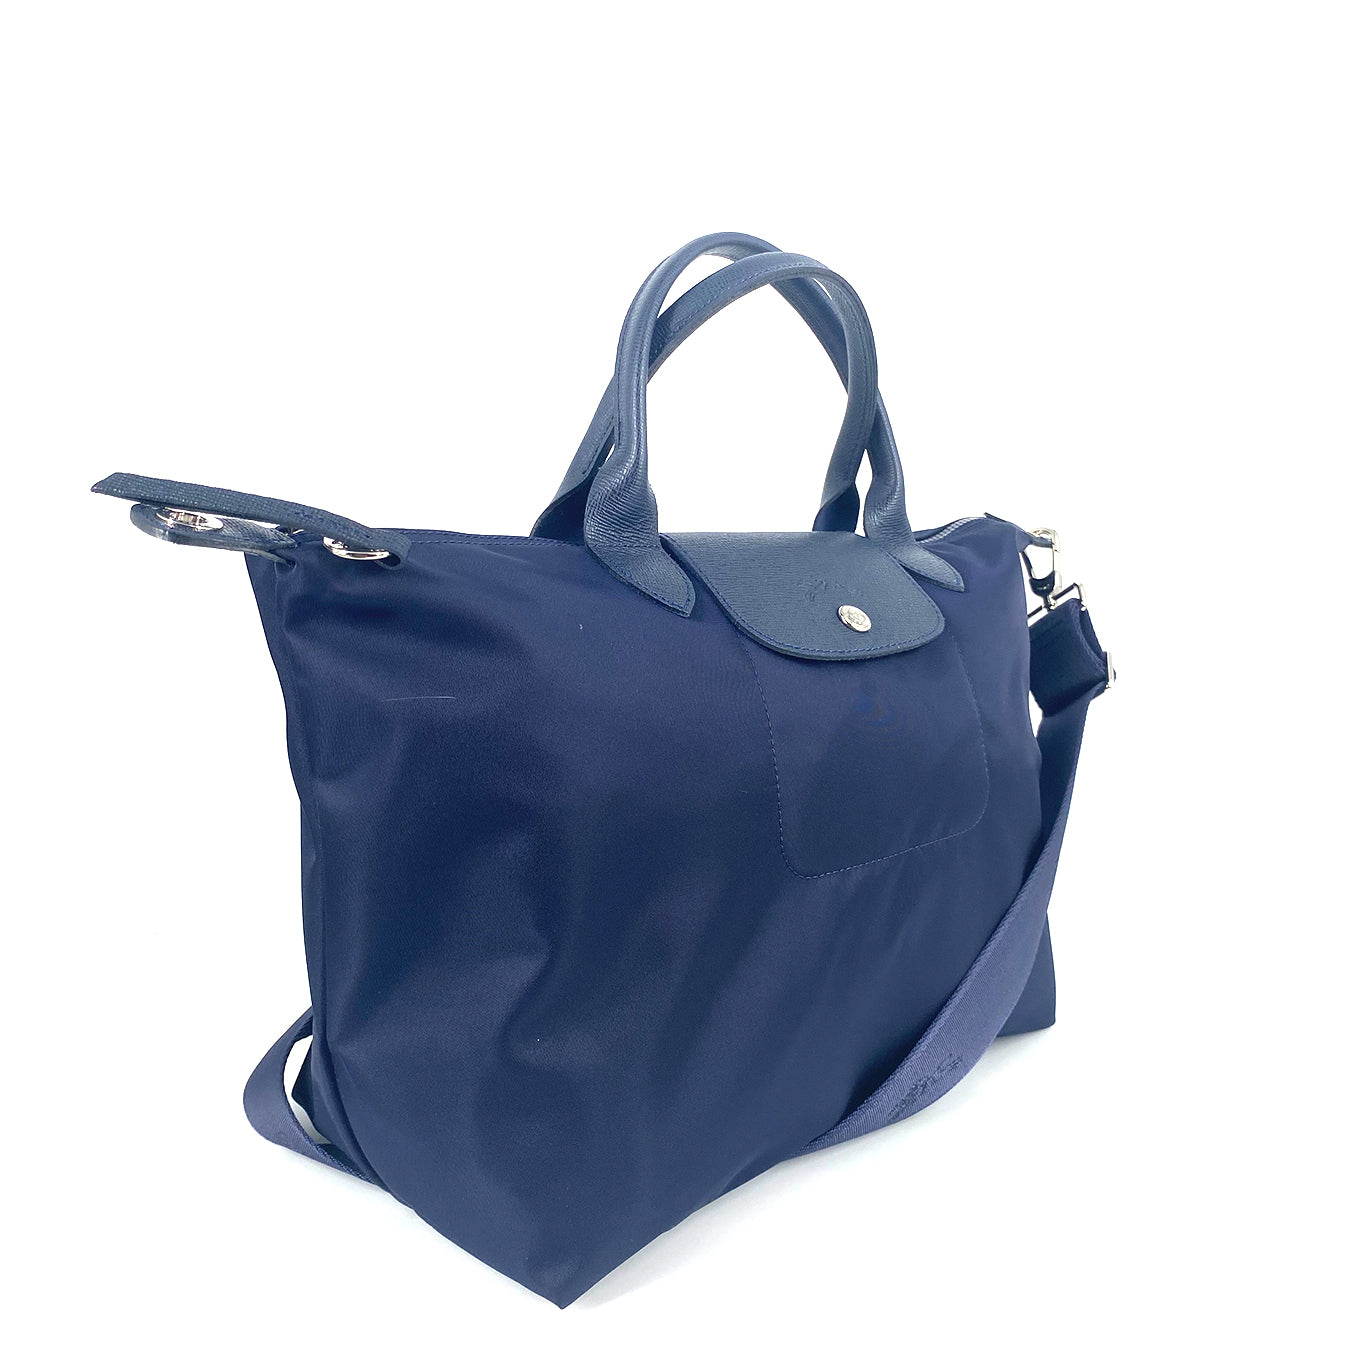 Longchamp Le Pliage Neo Medium Top Handle SH Navy With Strap Adjustable